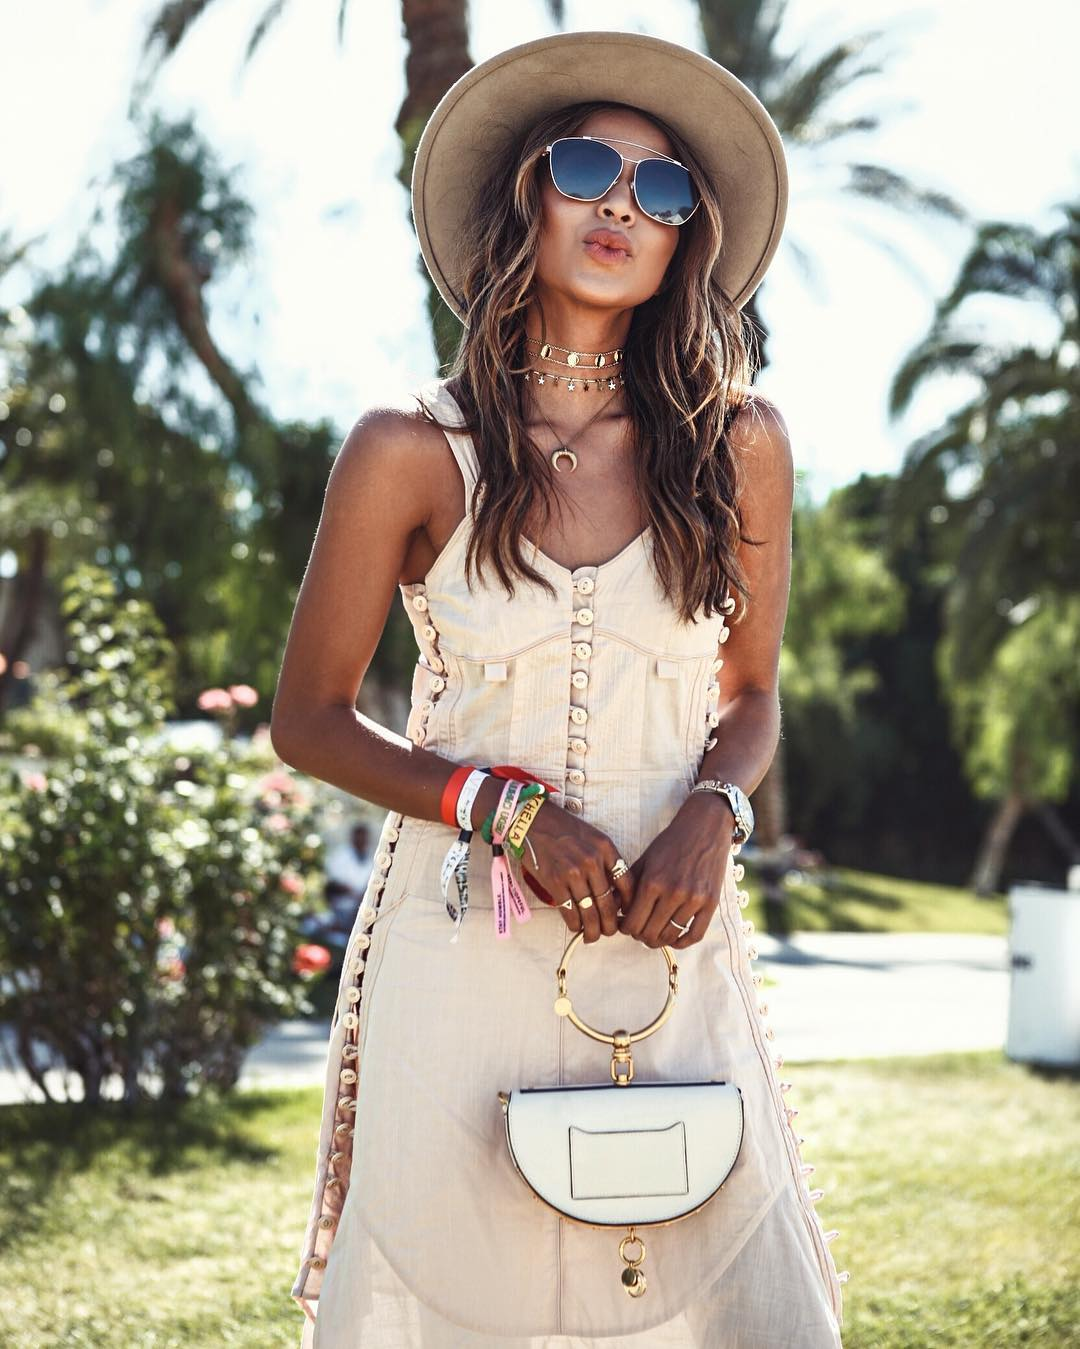 SINCERELY JULES OUTFIT COACHELLA 2017